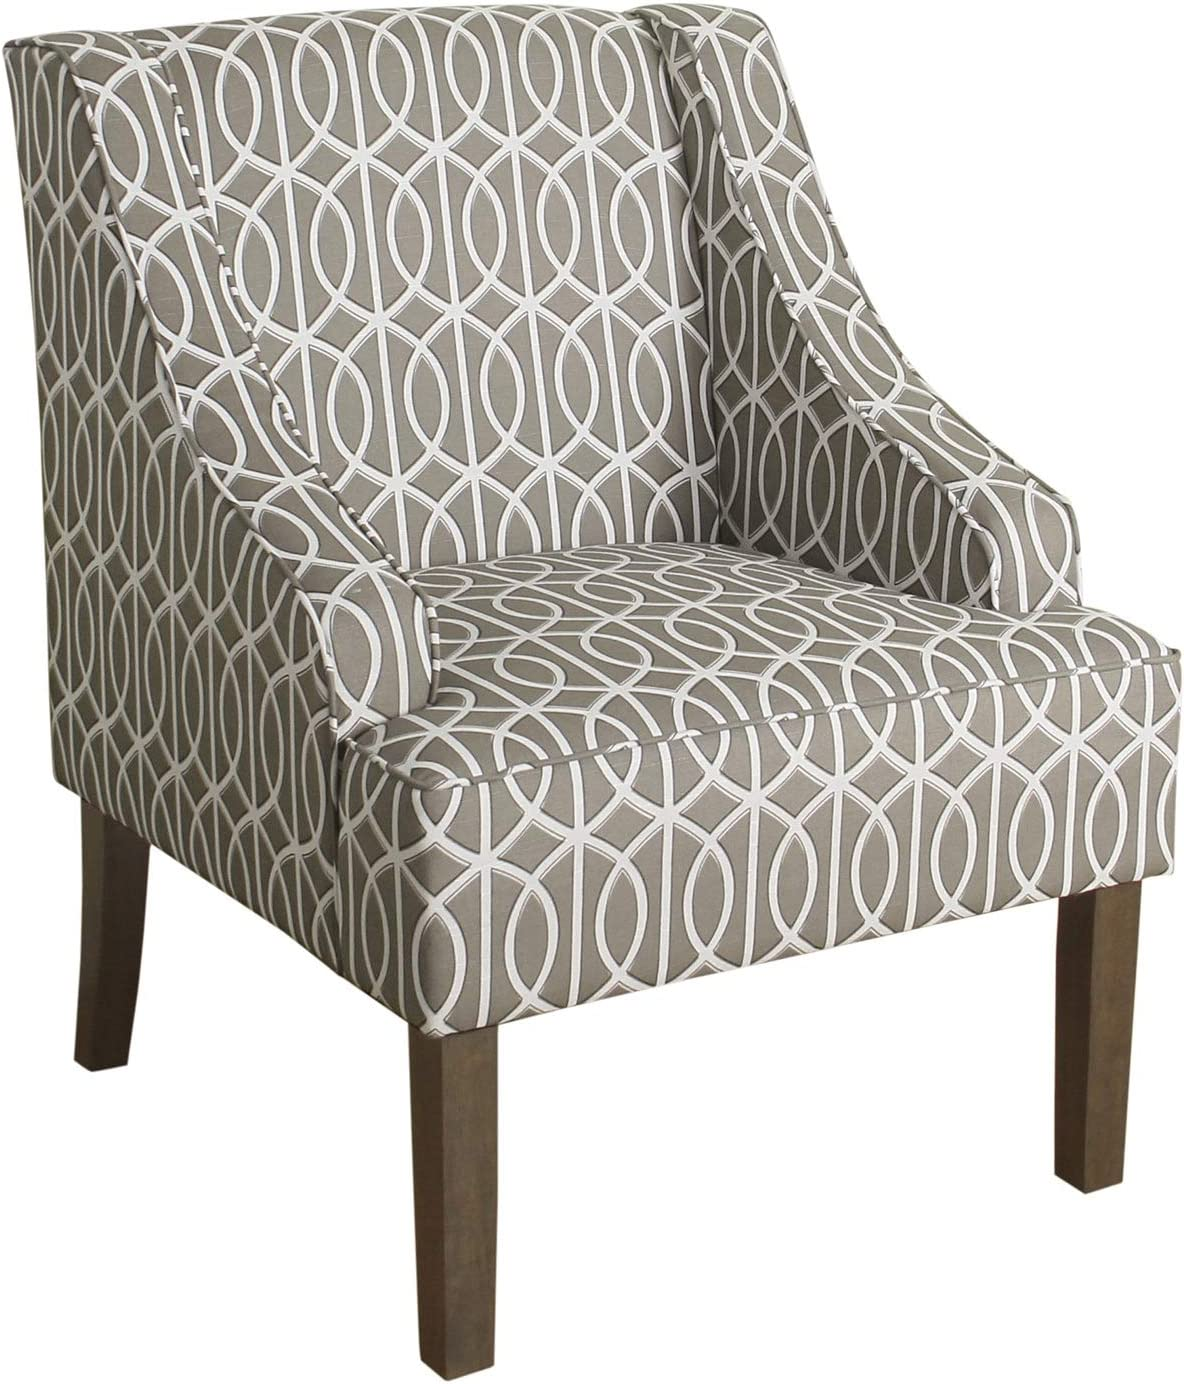 Benjara Wooden Accent Chair with Trellis Pattern Design, Gray and Cream